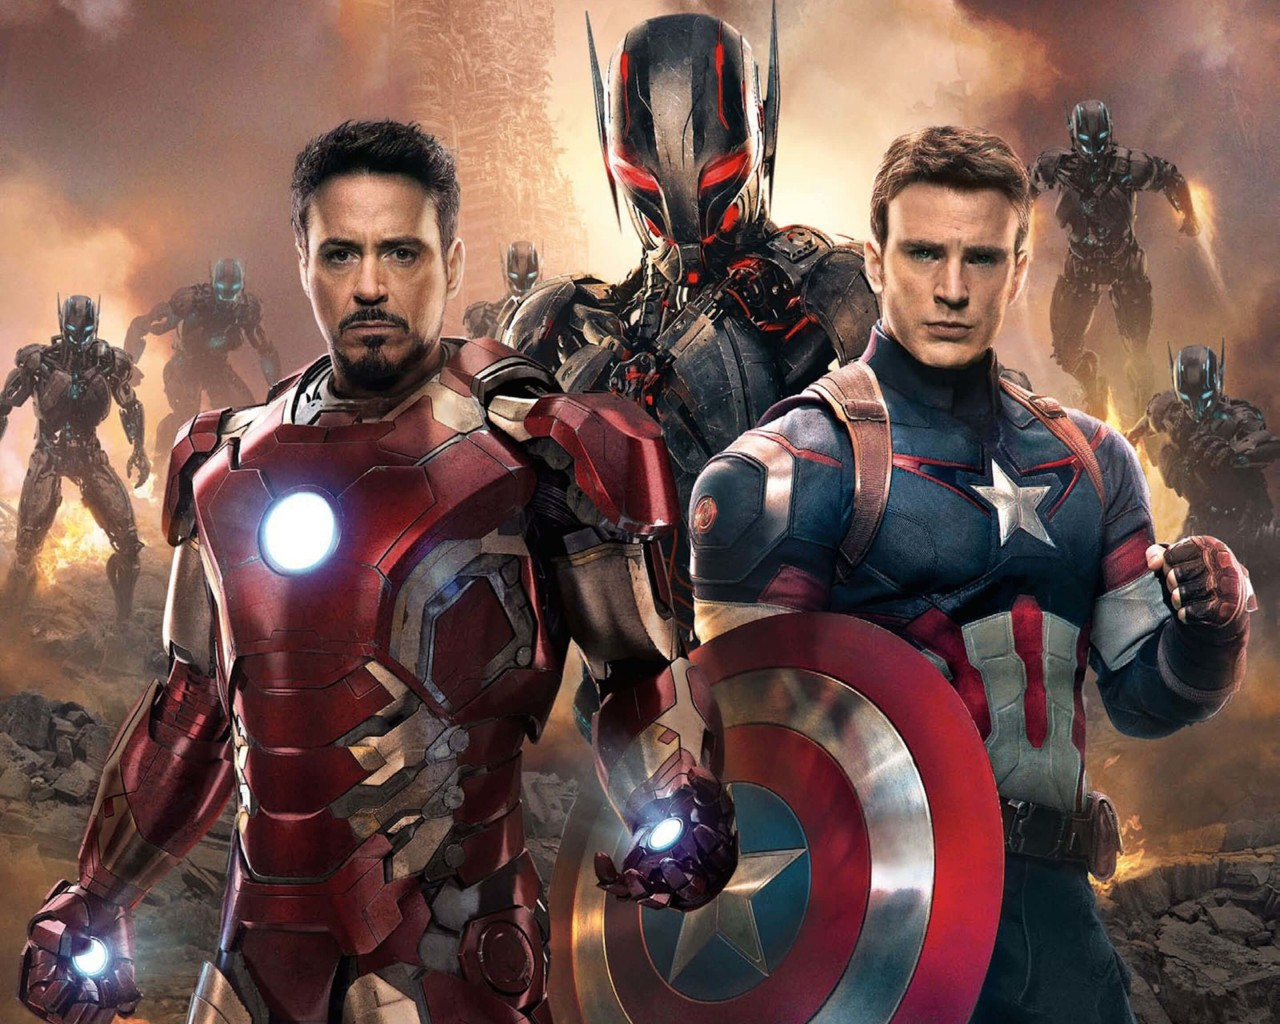 The Avengers: Age of Ultron - Iron Man and Captain America Wallpaper for Desktop 1280x1024